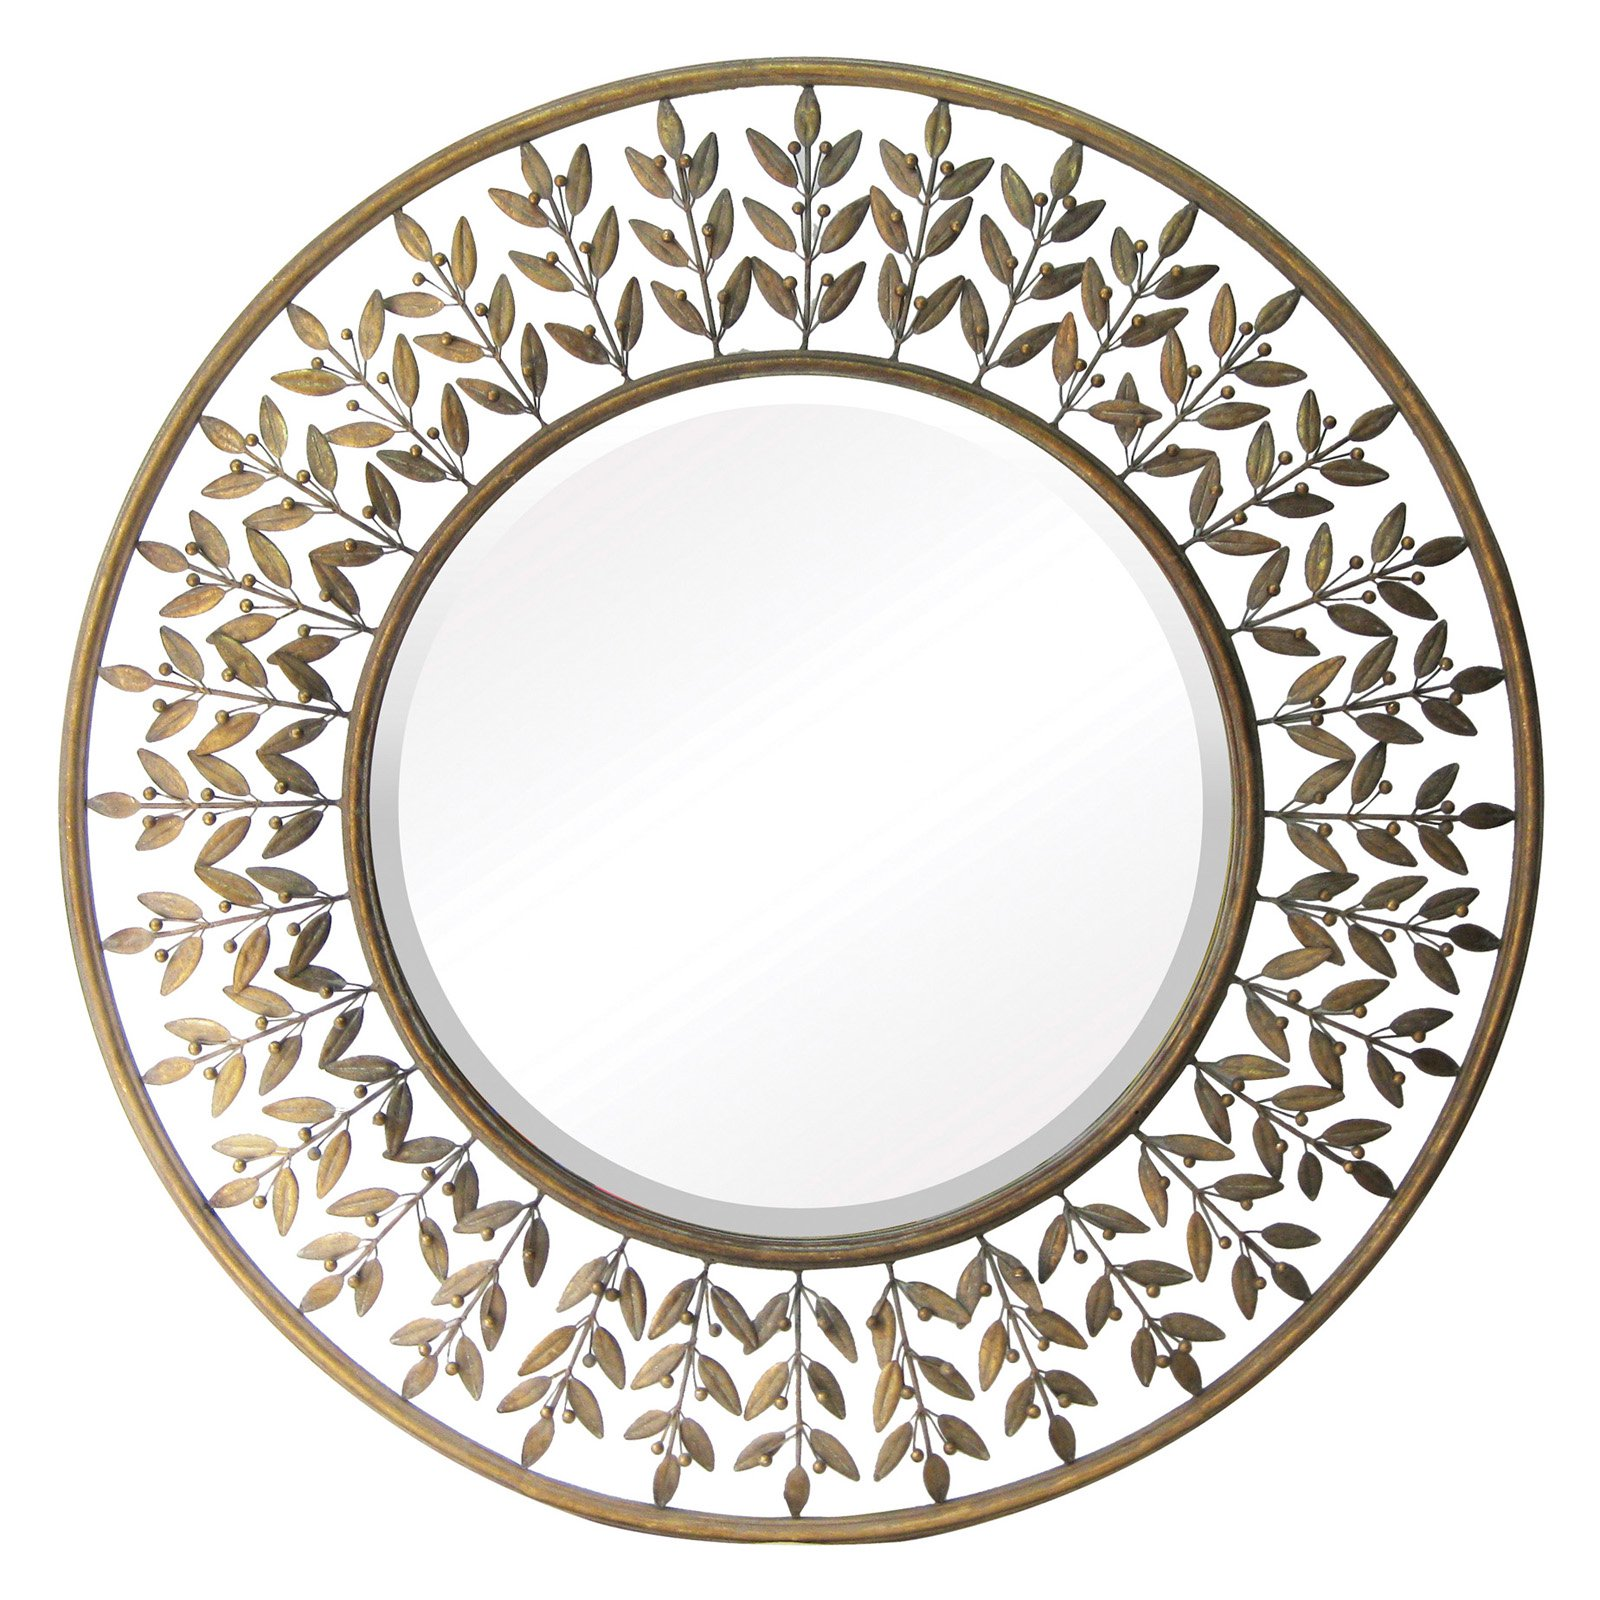 Elk Lighting Willow Brook Decorative Wall Mirror - 39 diam. in.